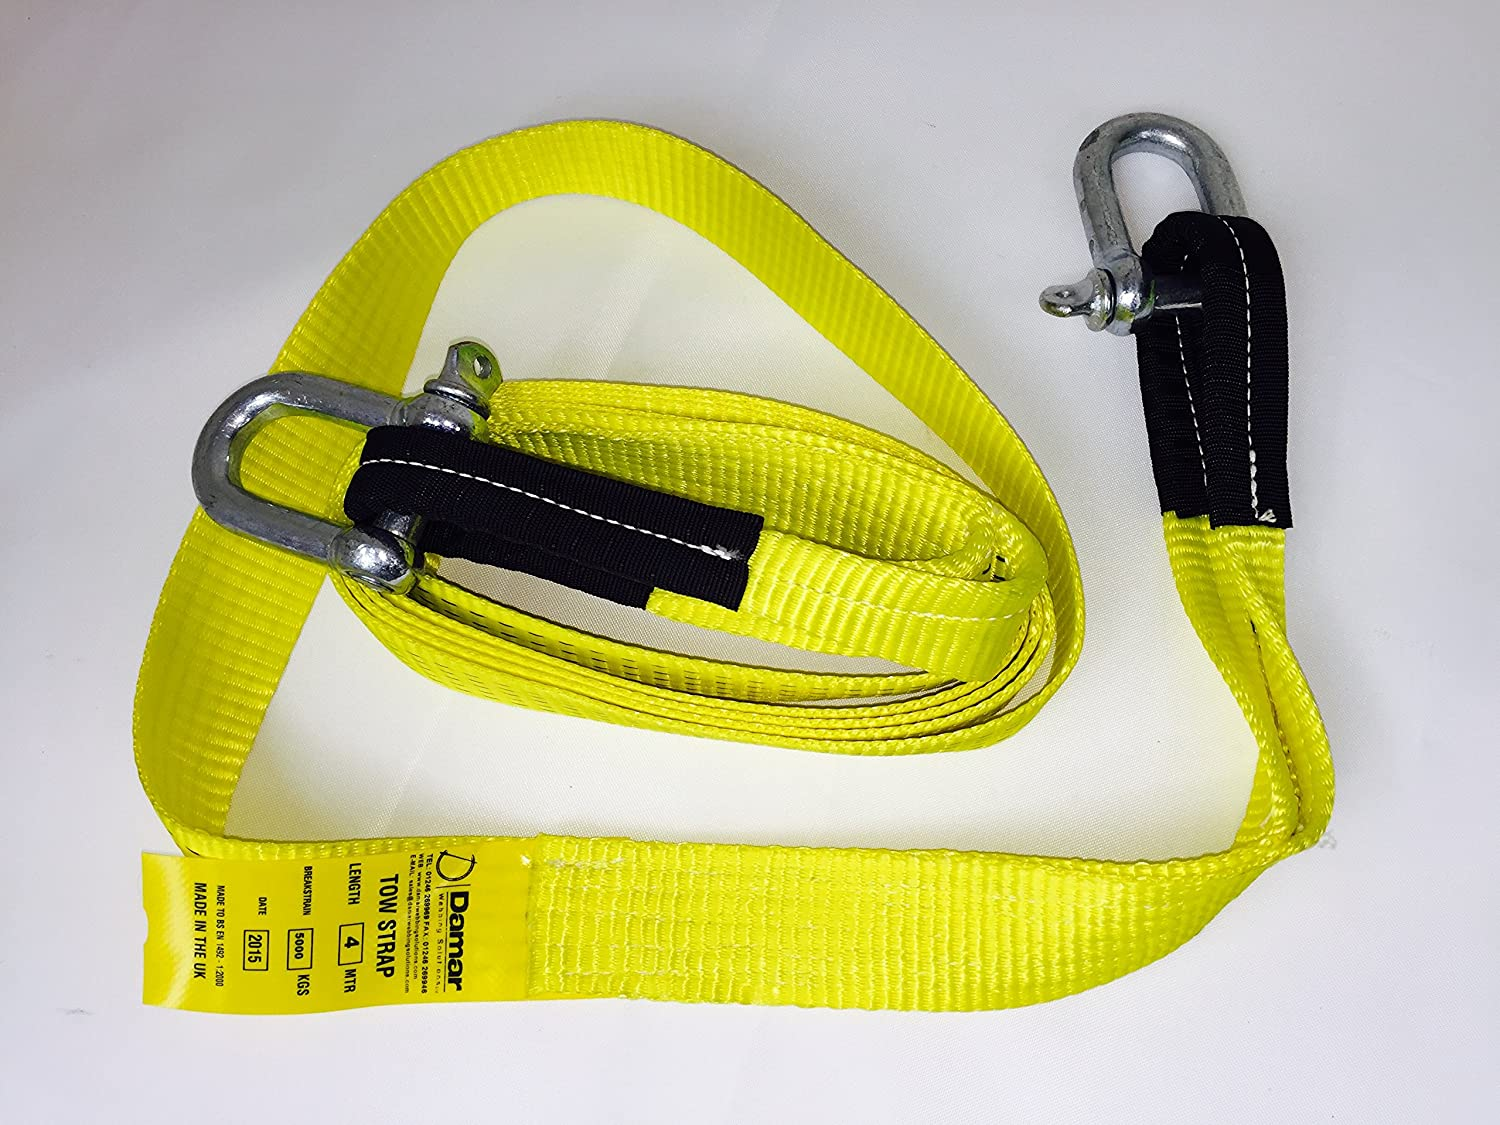 Damar Webbing Solutions Ltd Tow Rope Strap 5ton Heavy Duty 4mtr with 2 shackles